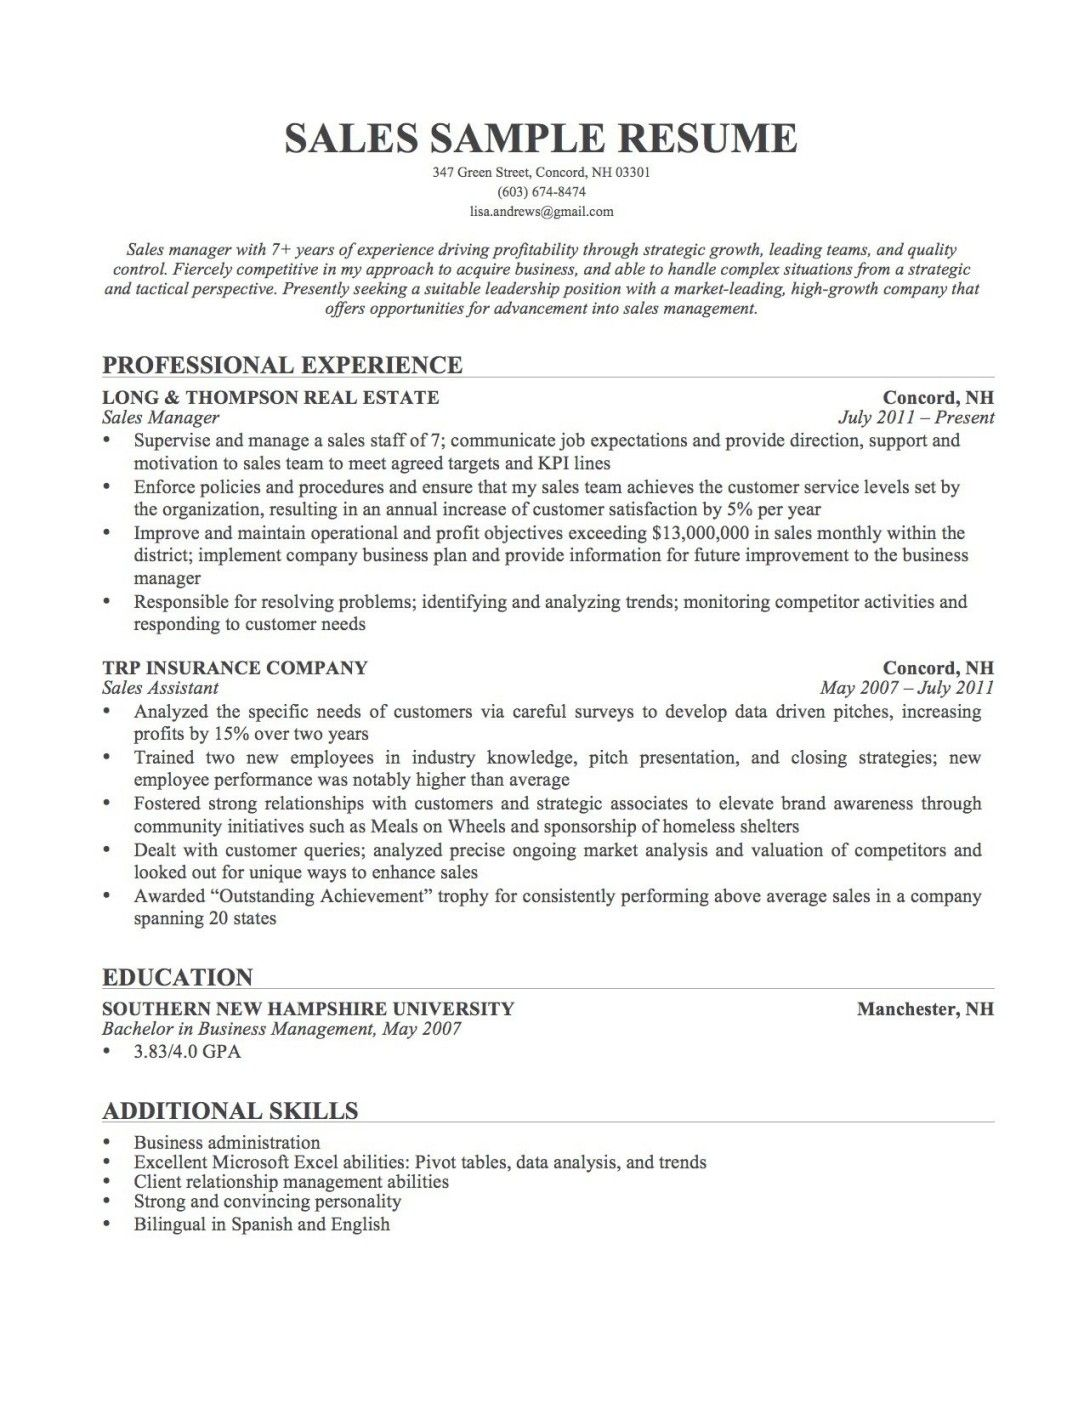 Resume Examples Me Nbspthis Website Is For Sale Nbspresume Examples Resources And Information Cover Resume Free